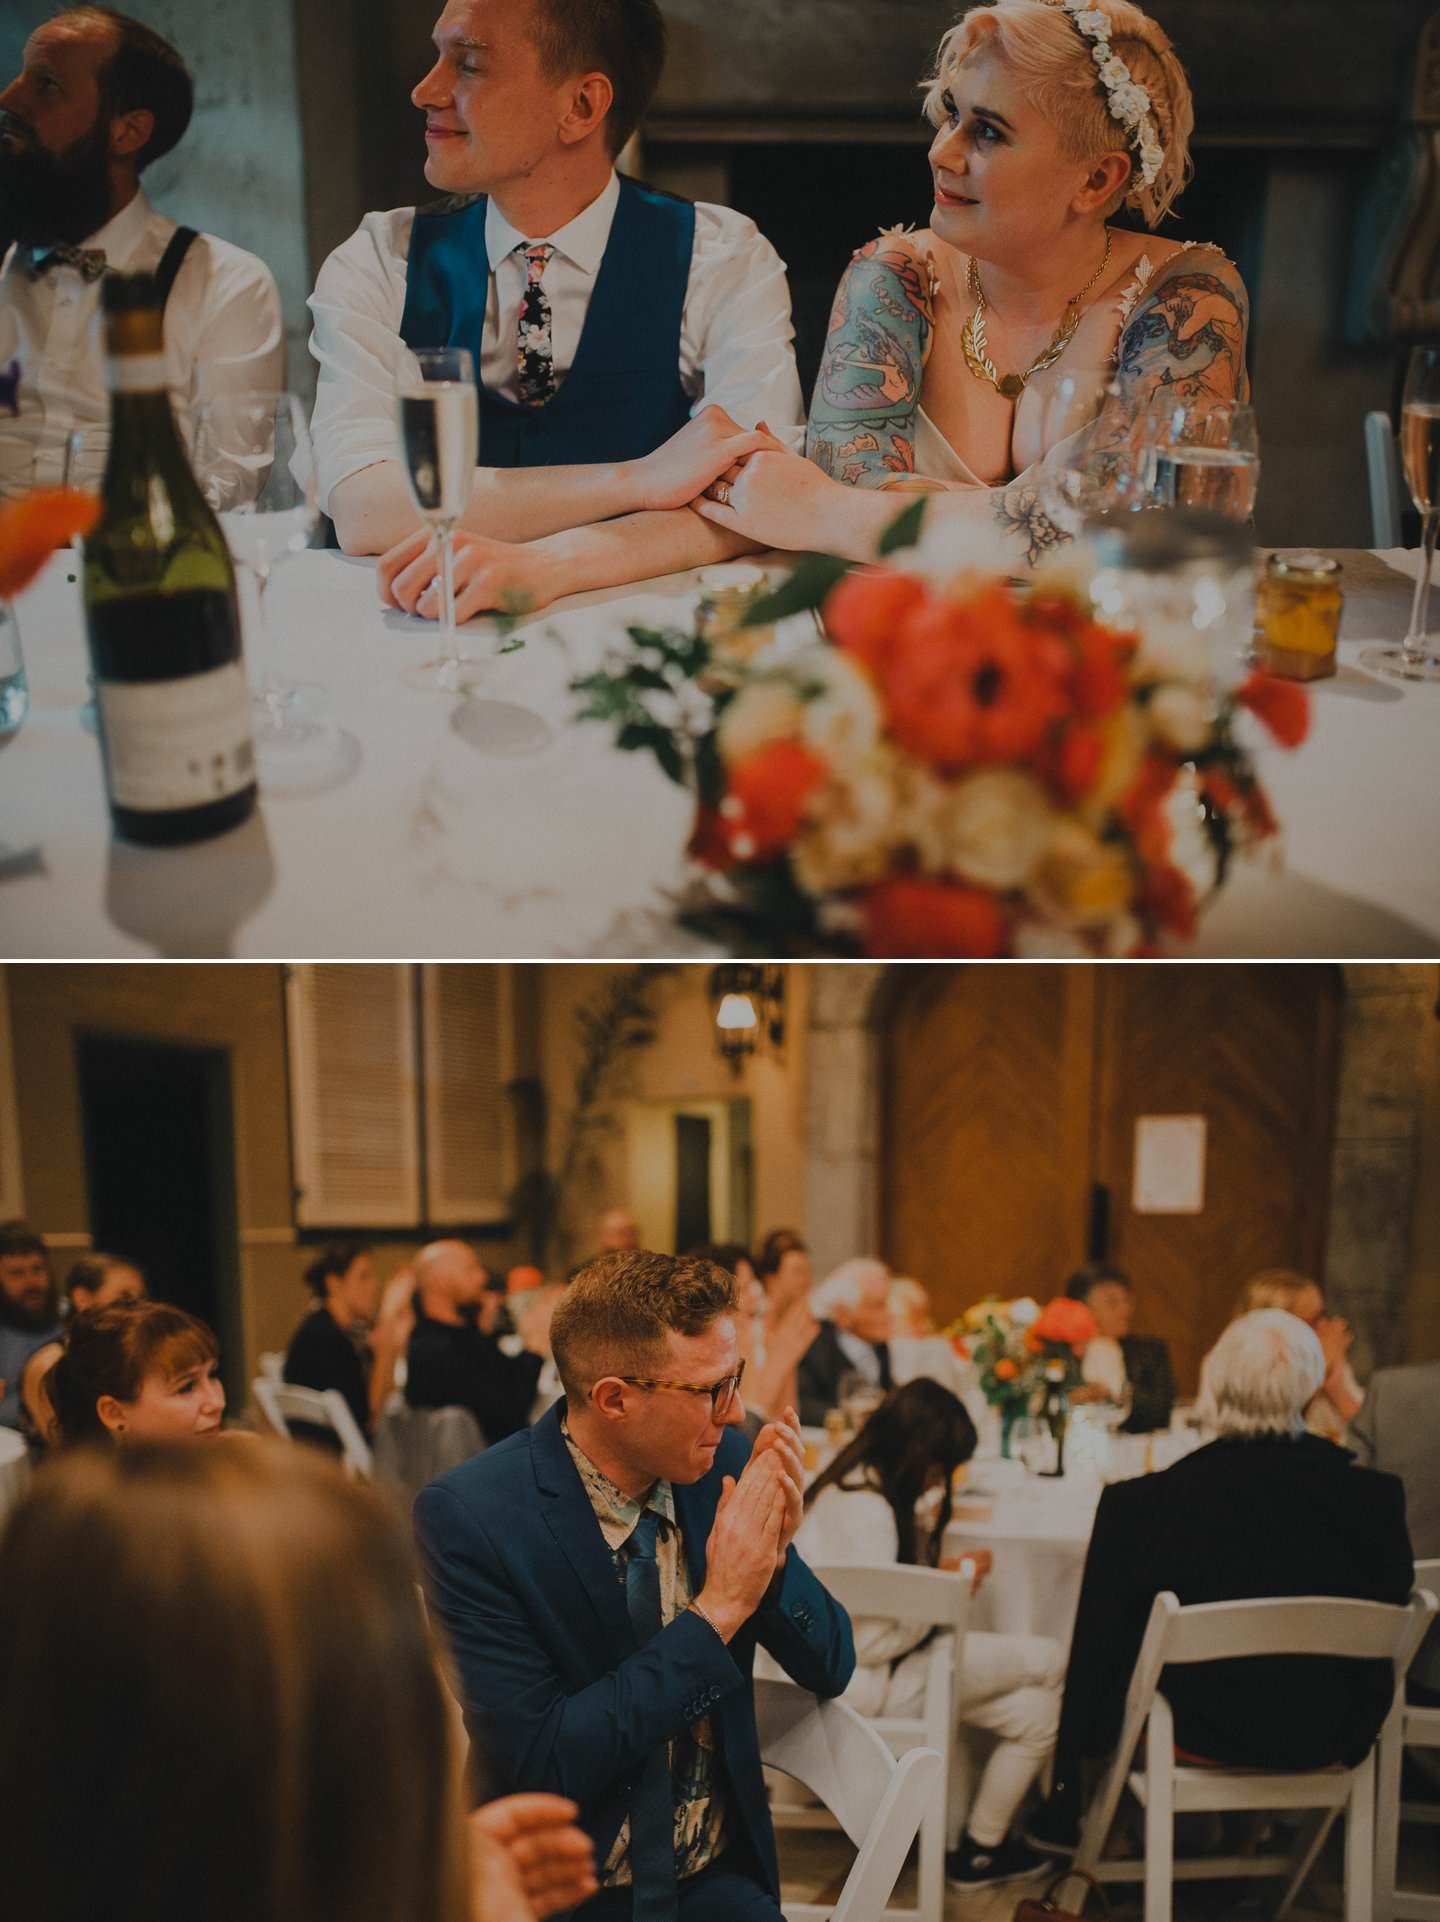 Candid wedding photography during wedding speeches